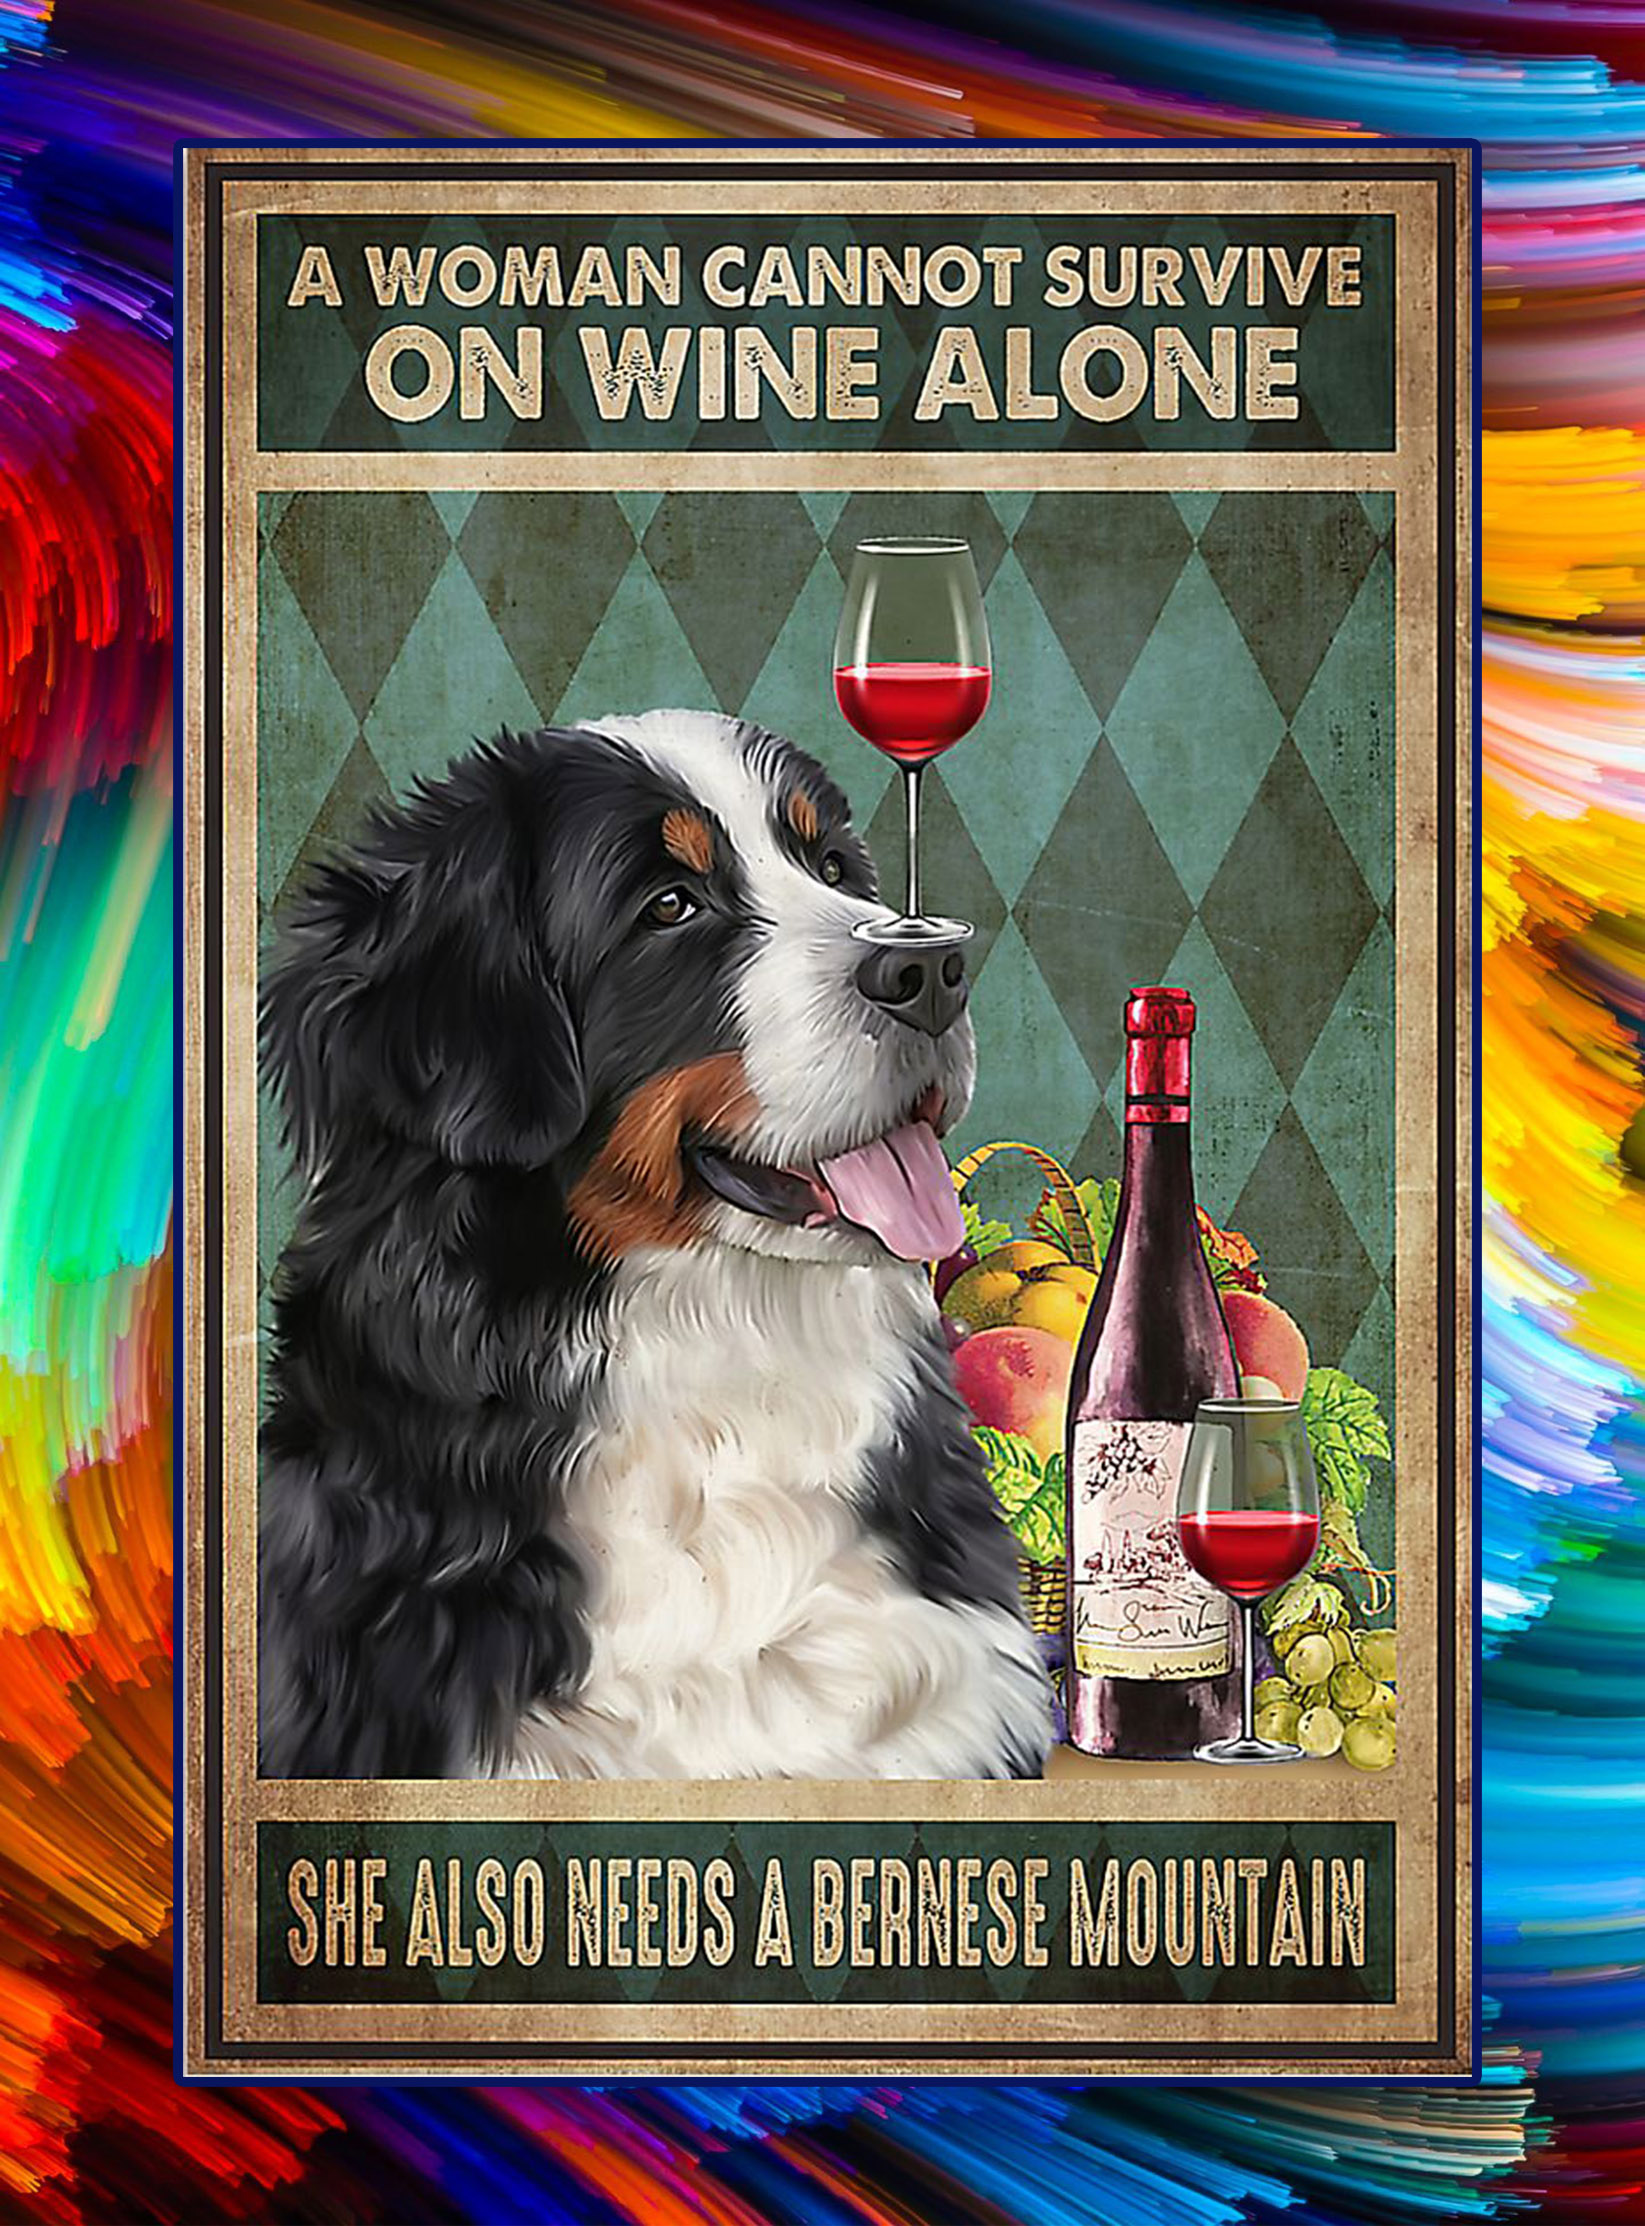 A woman cannot survive on wine alone she also needs a bernese mountain poster - A3